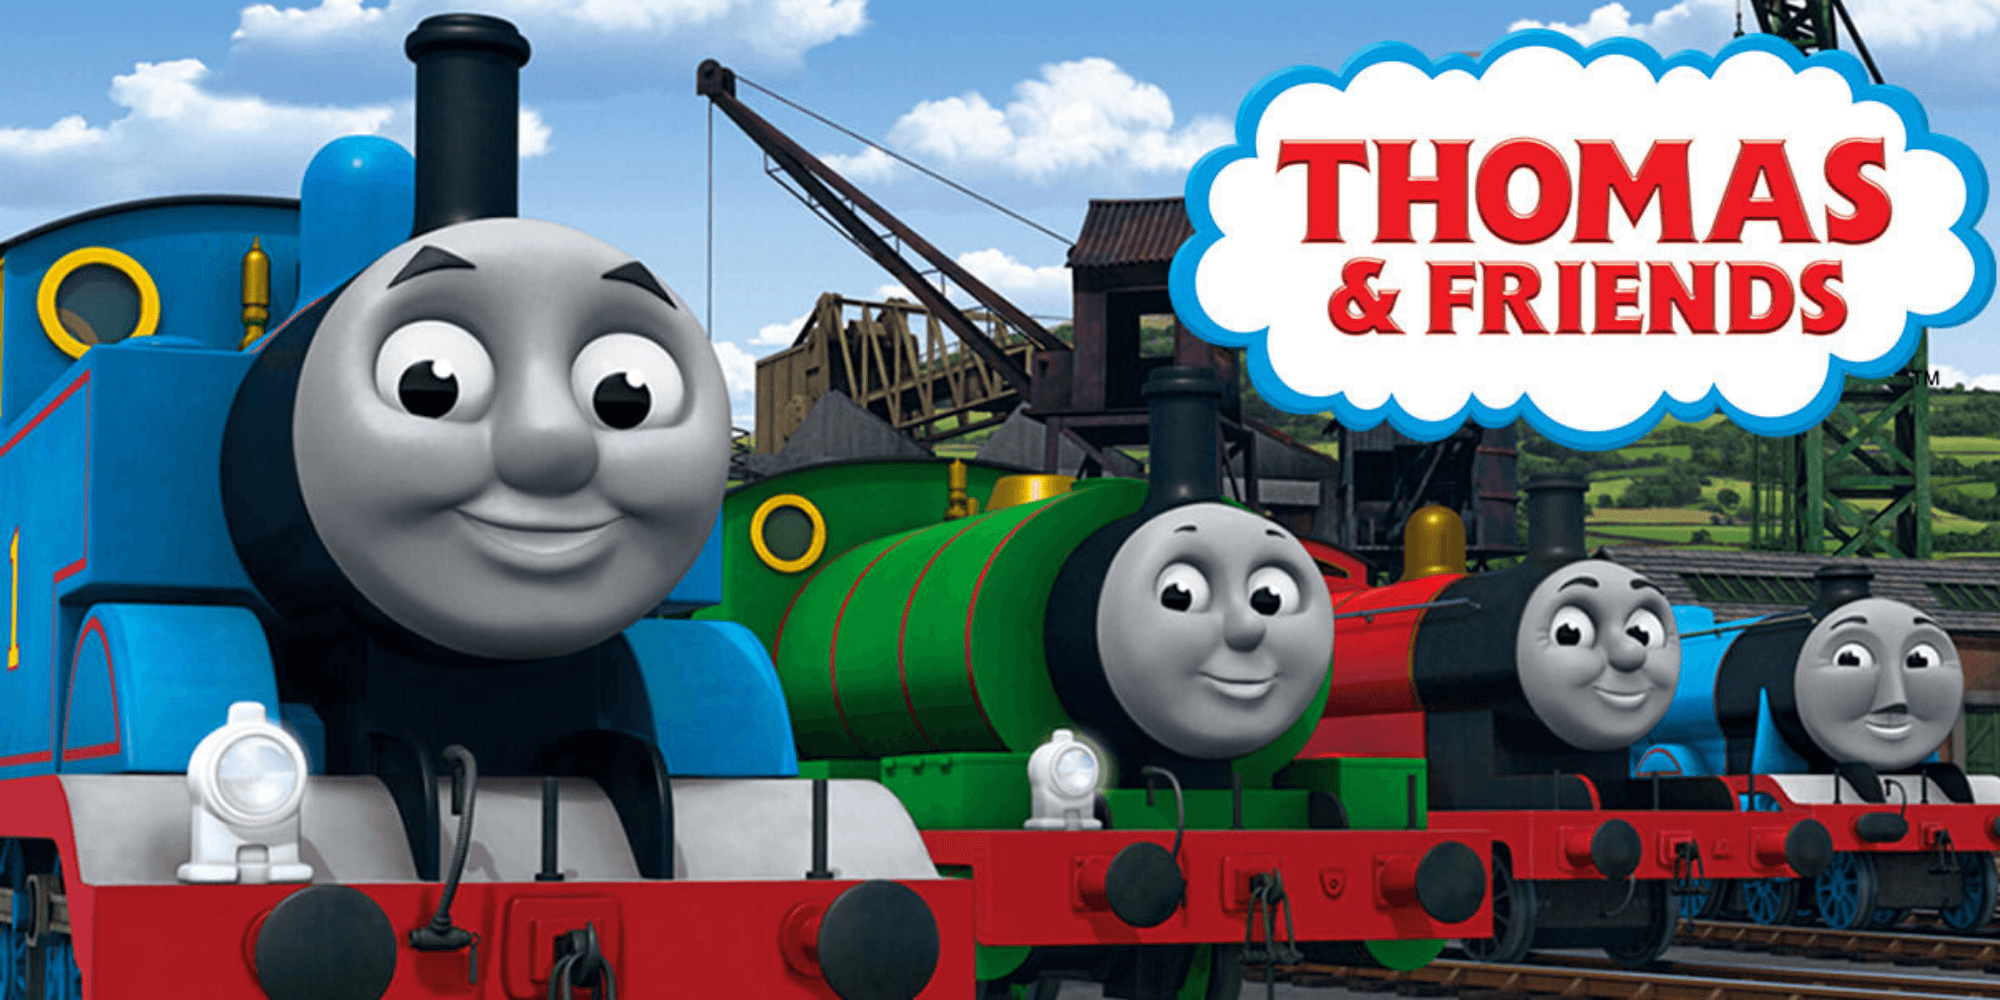 Thomas and Friends series poster